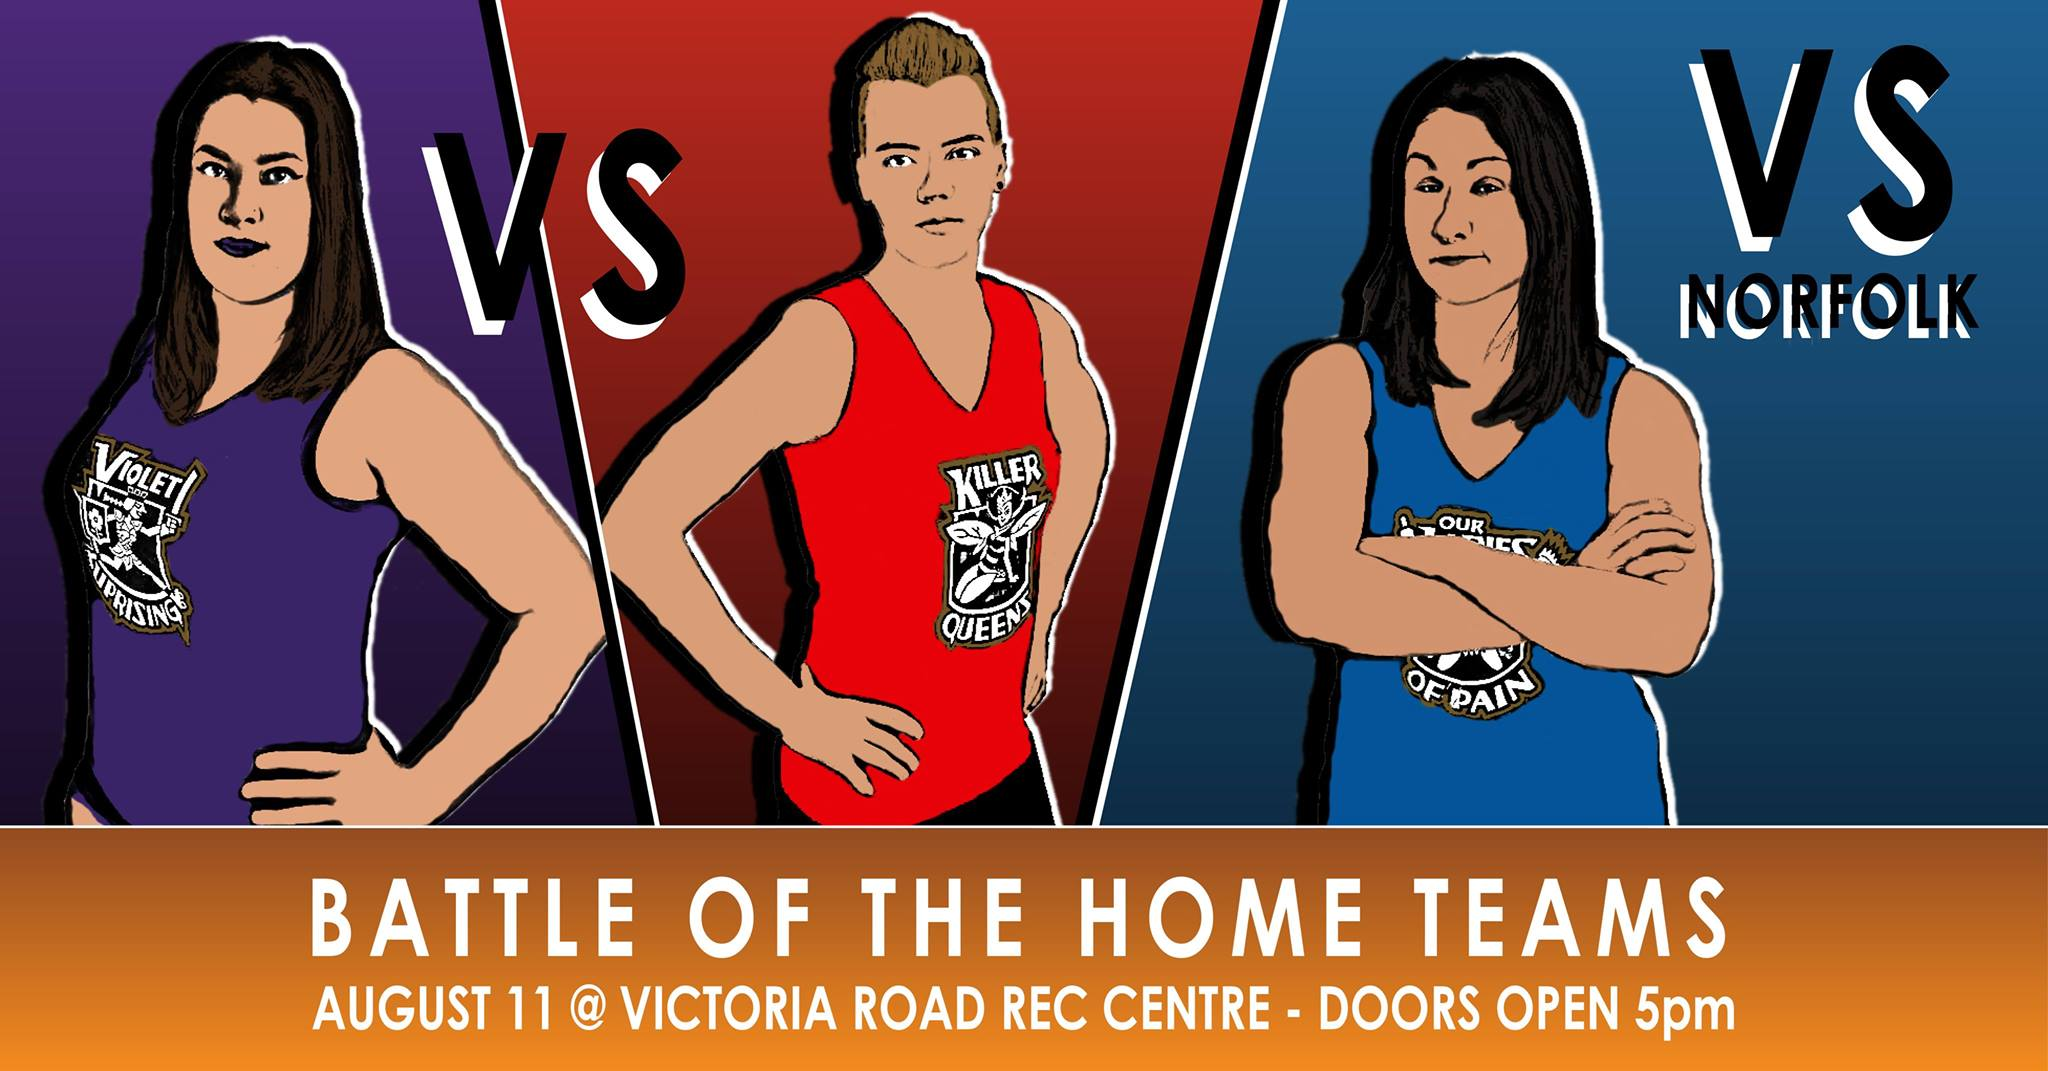 A poster advertising the bout on June 23rd. A red Killer Queens skater faces off against a purple Violet Uprising skater.